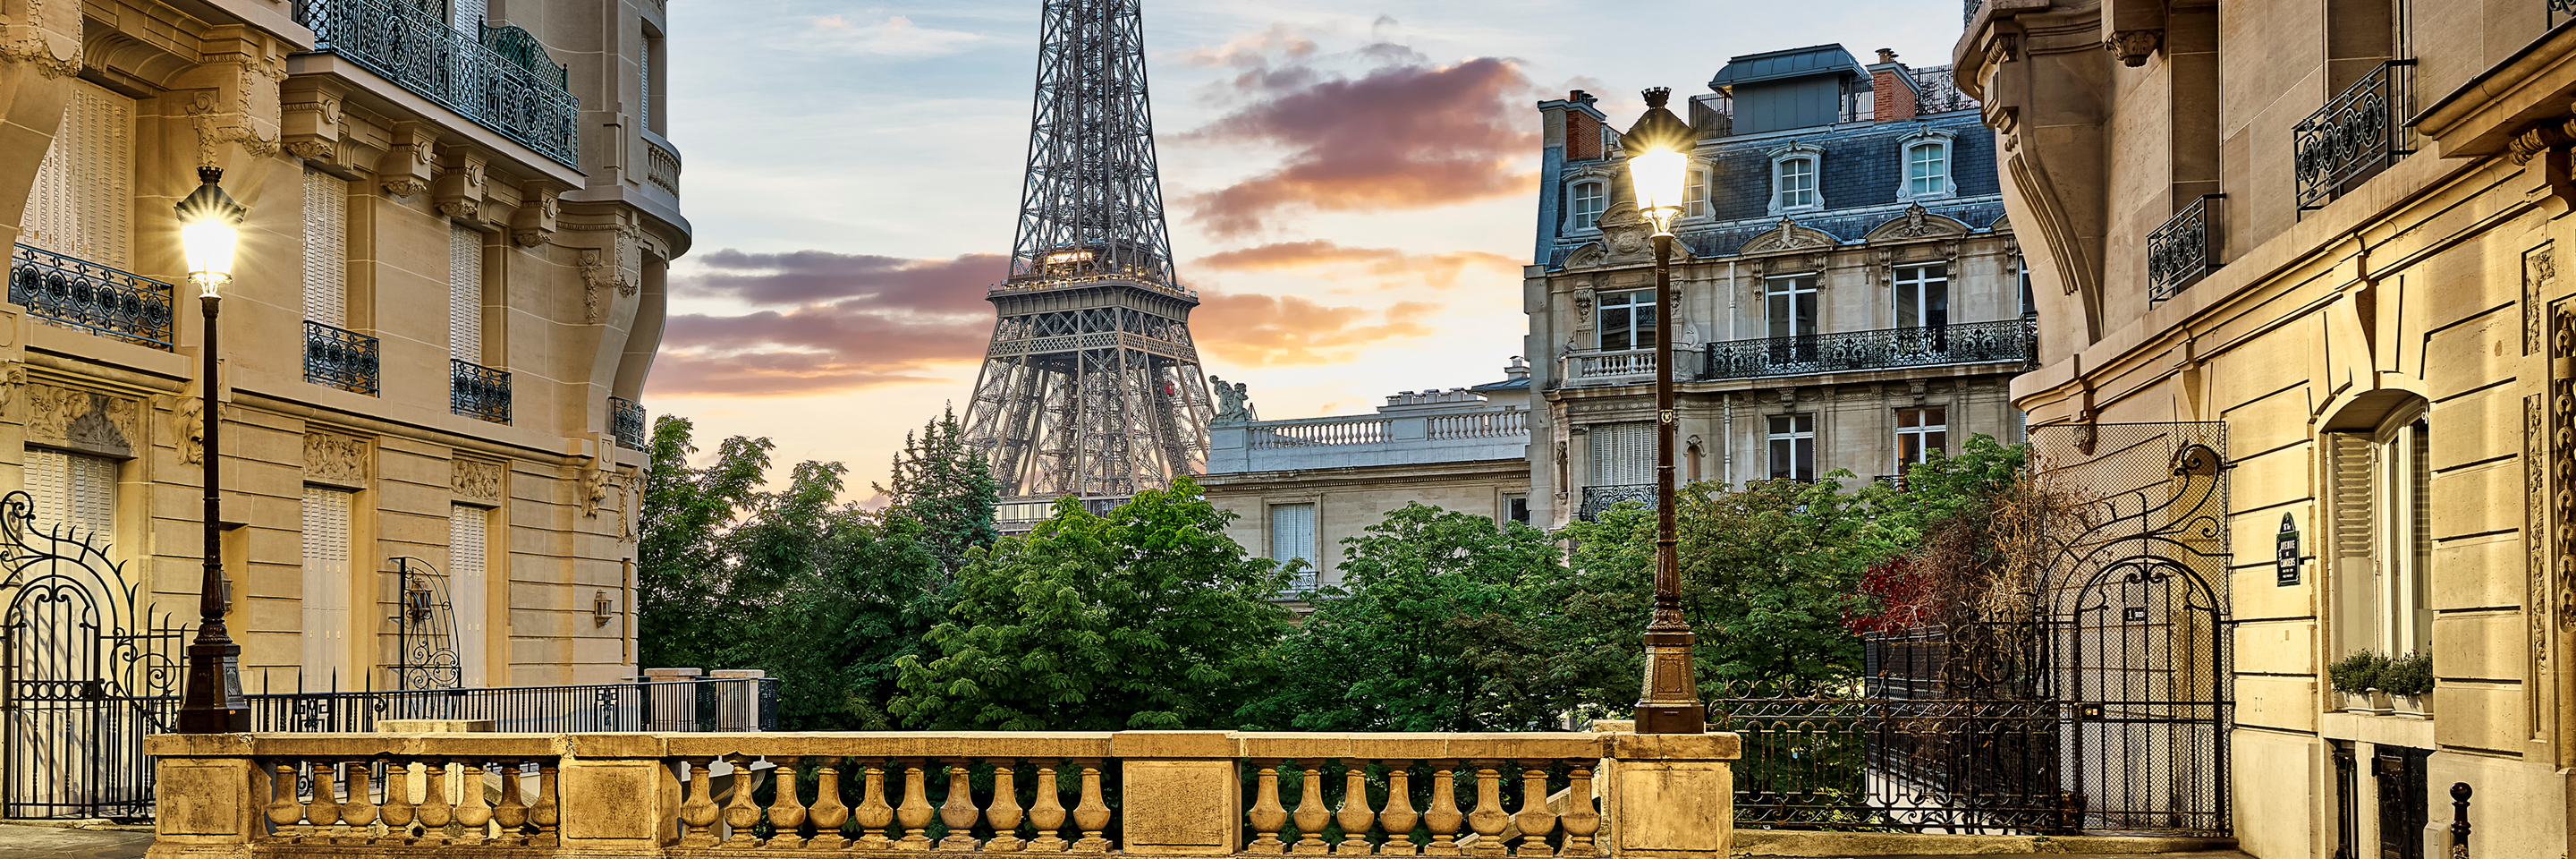 The Rhine & Moselle: Canals, Vineyards & Castles with 2 nights in Paris